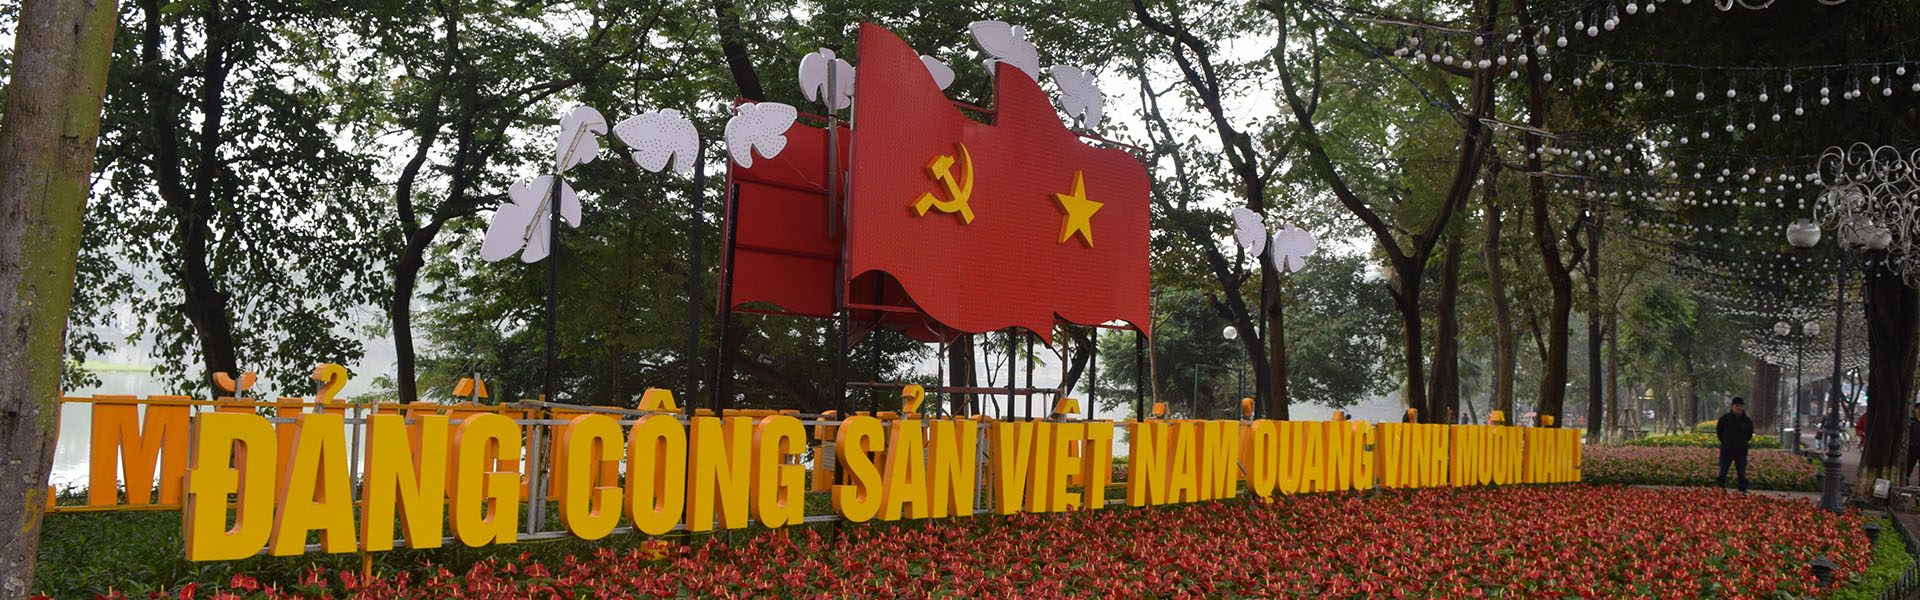 A welcome sign in Viatnamese in Hanoi Vietnam